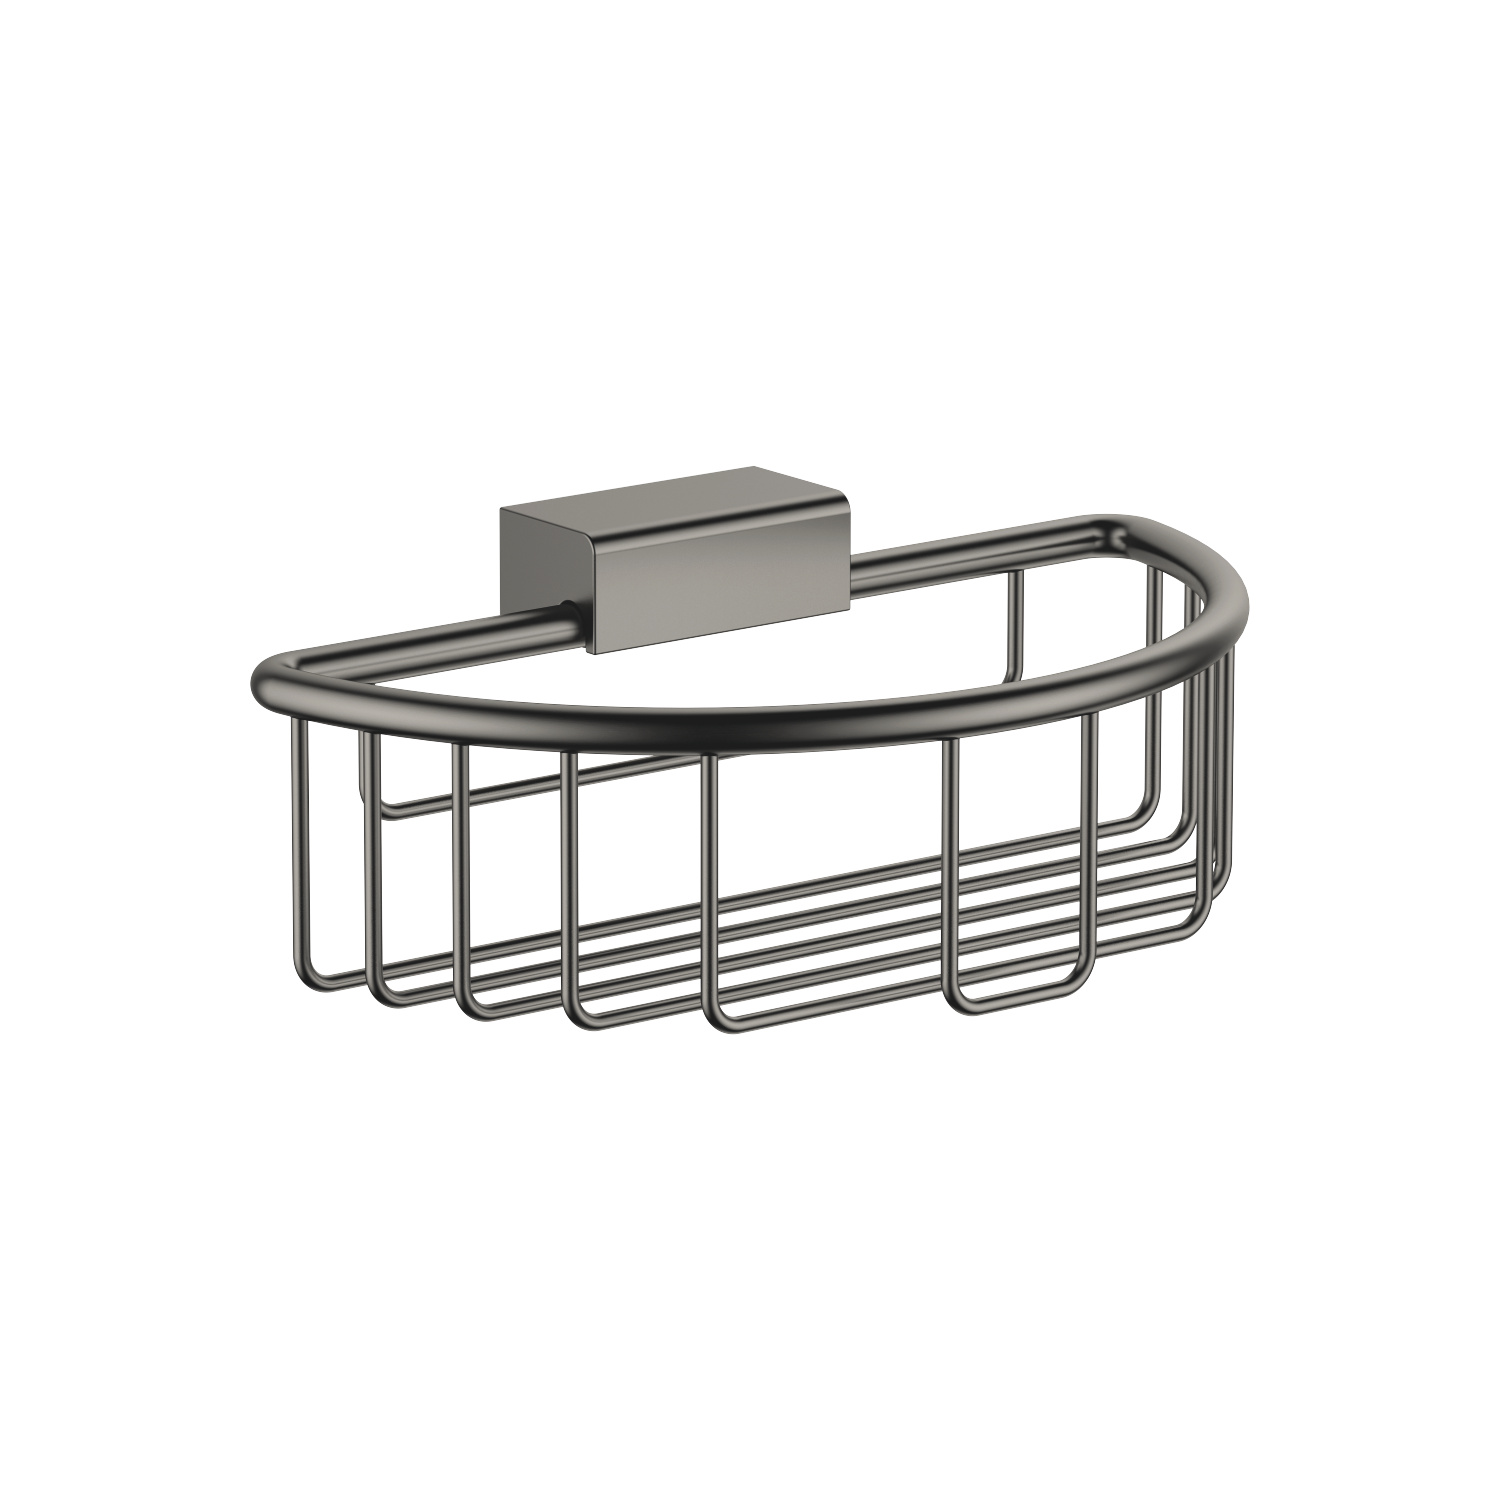 Shower basket for wall mounting - Dark Platinum matt - 83 290 970-99